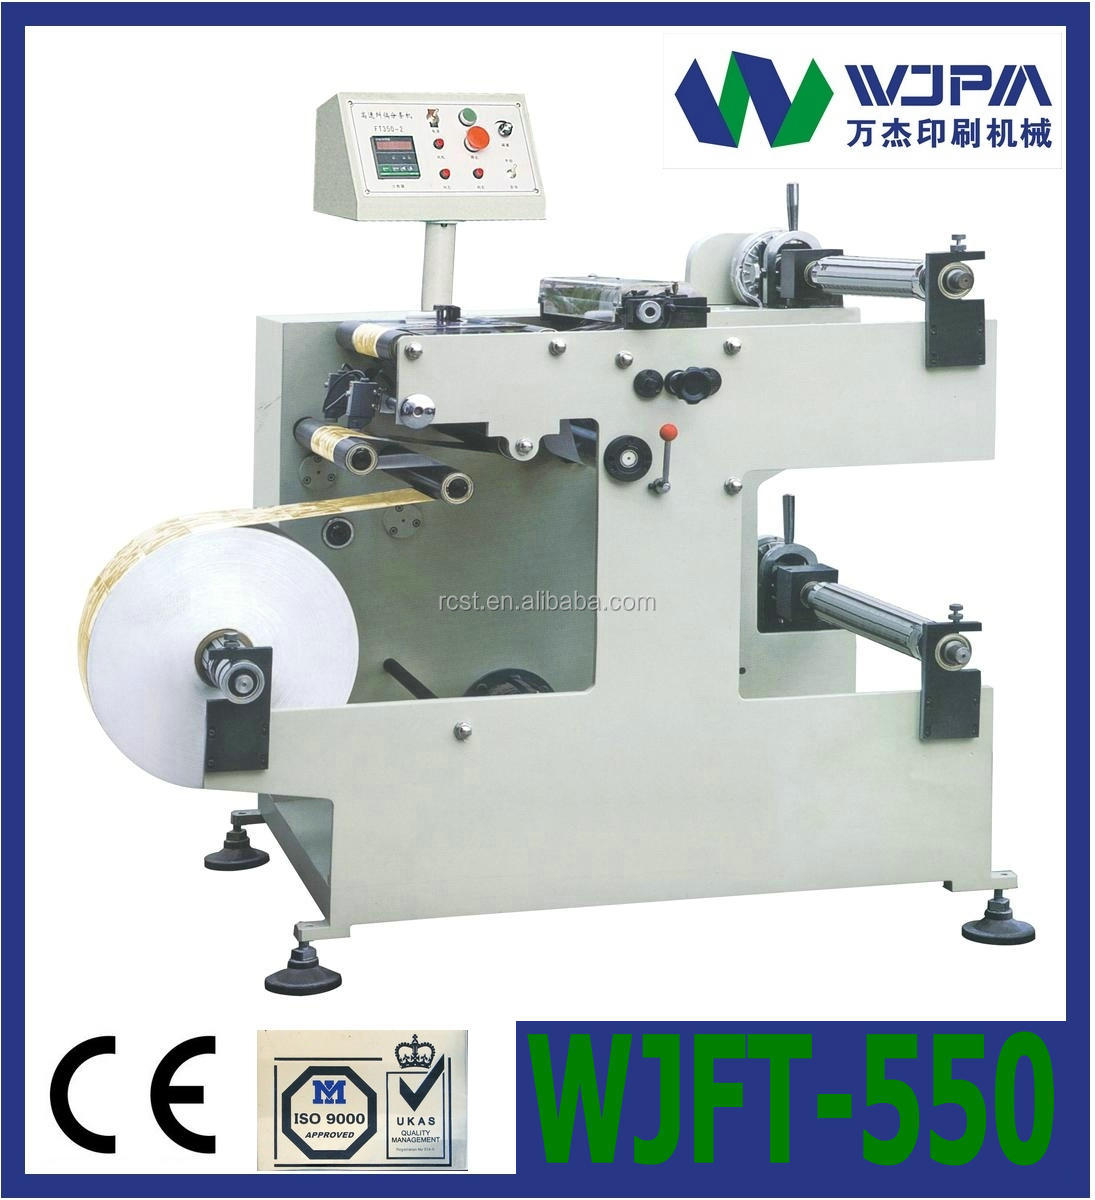 Automatic Flat-bed Label Die-cutting Machine -WJMQ350A